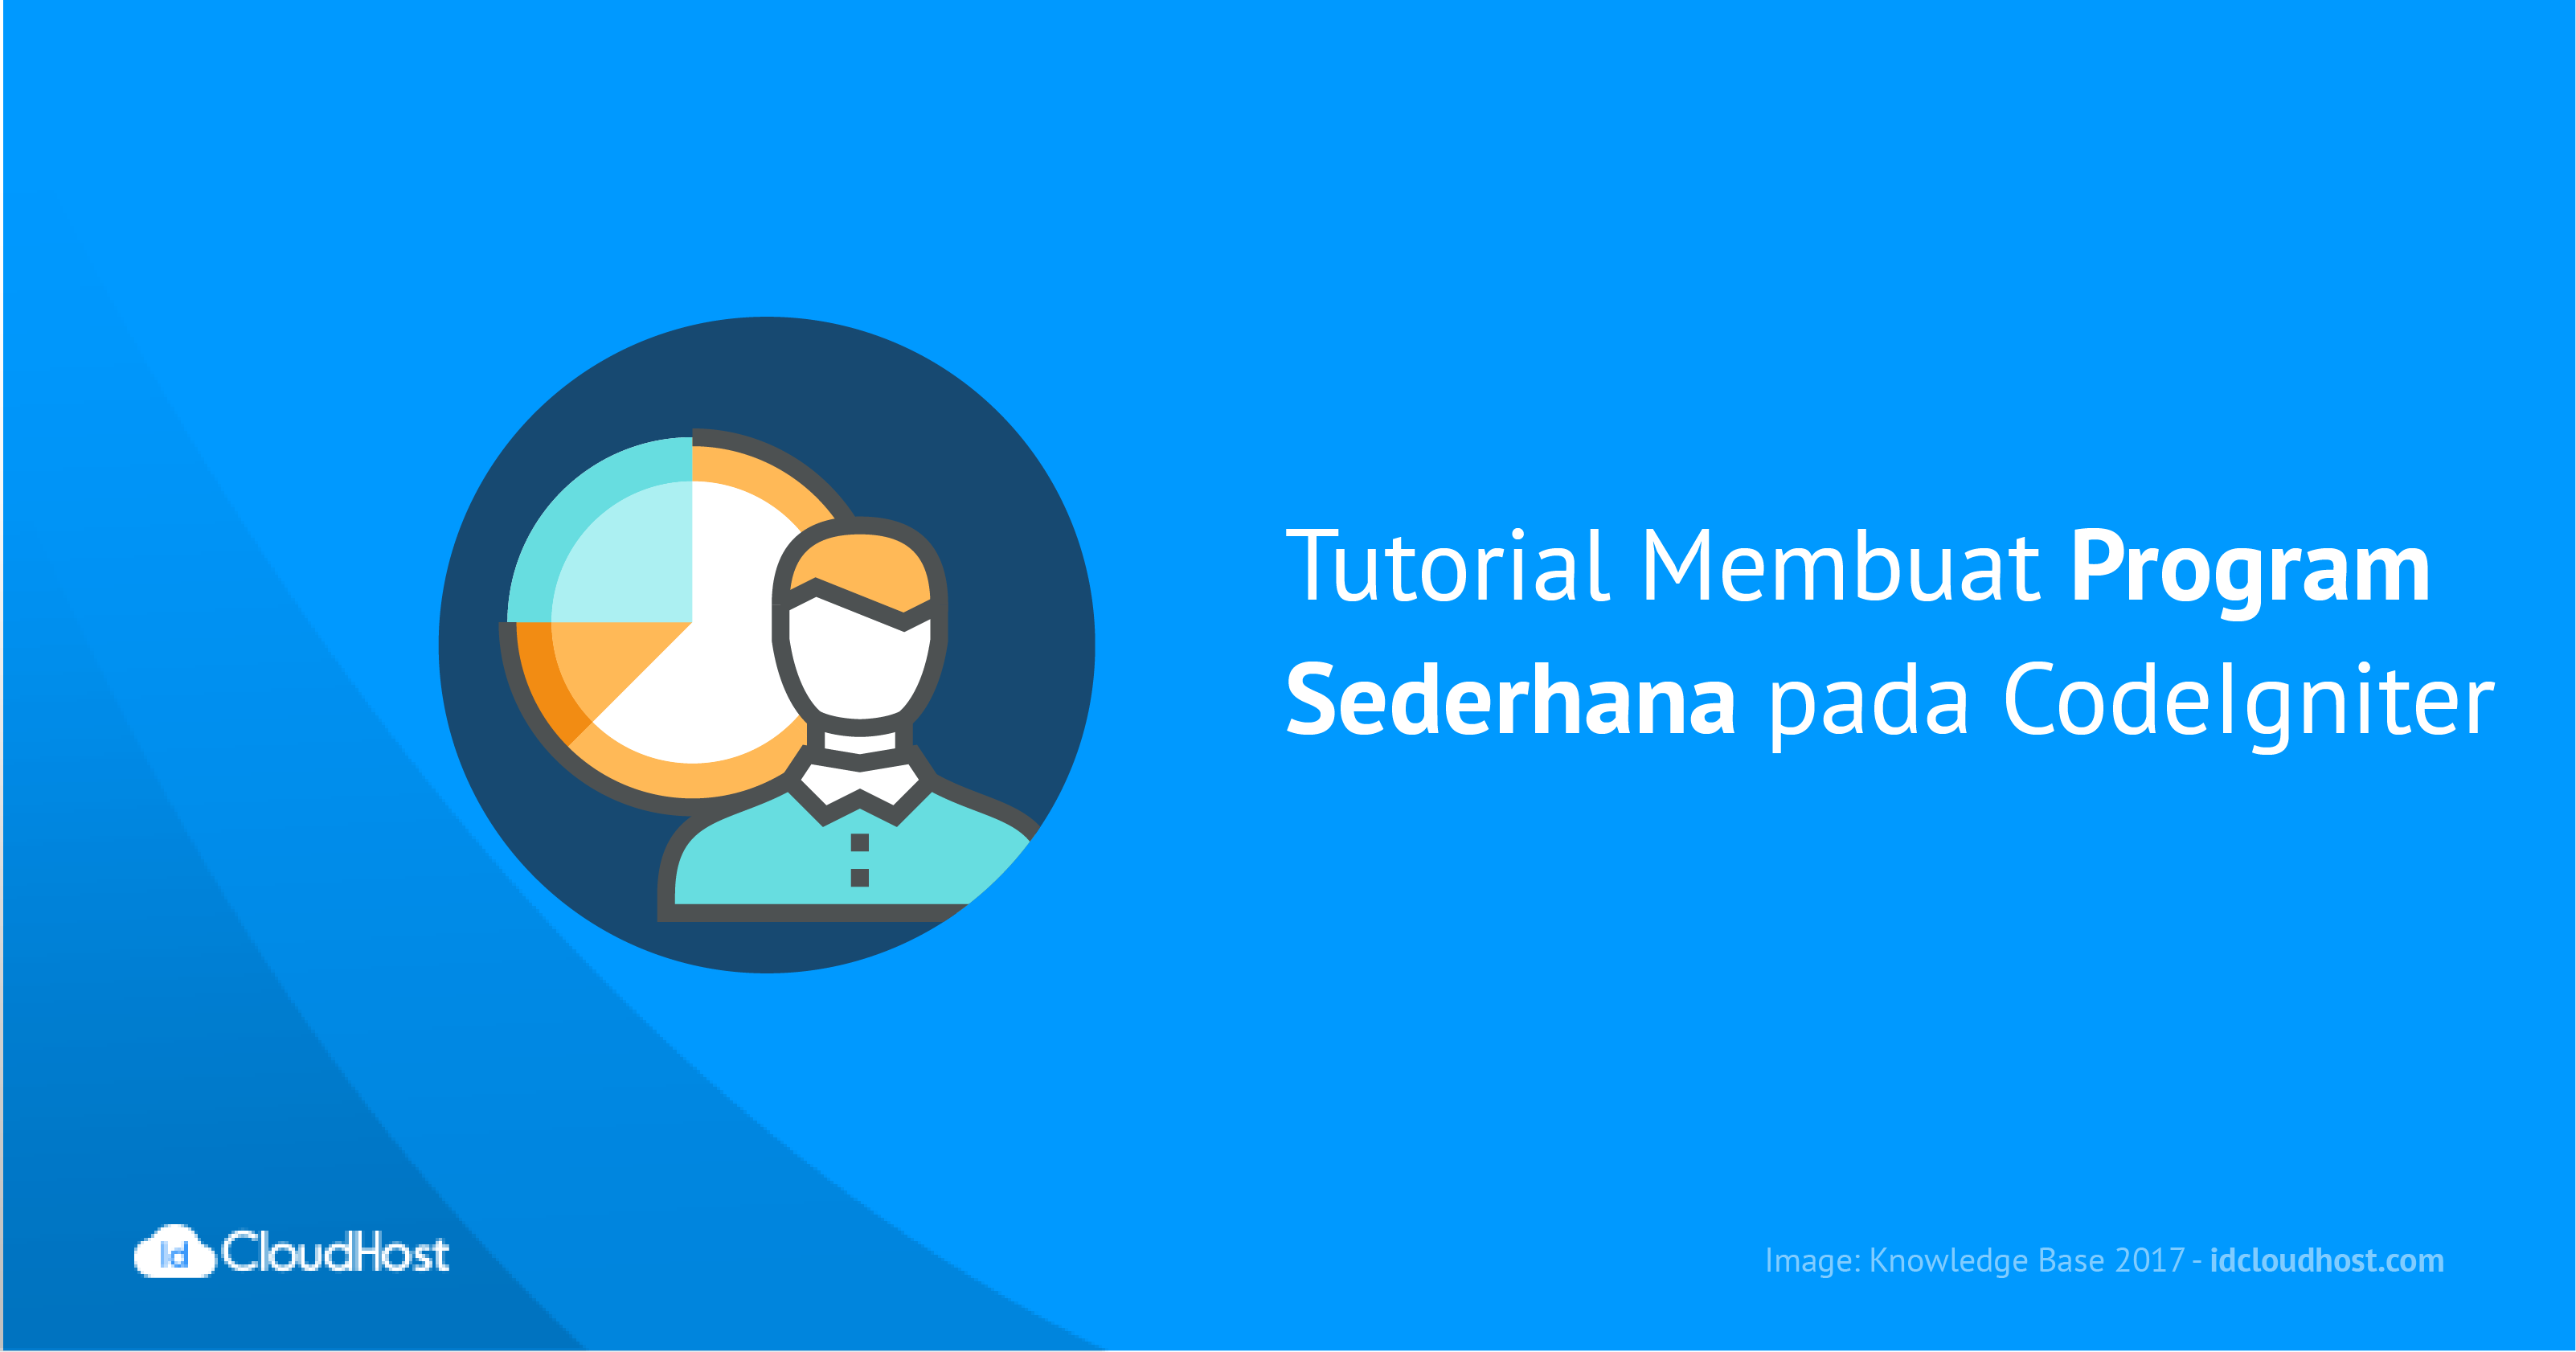 Tutorial Membuat Program Sederhana pada CodeIgniter